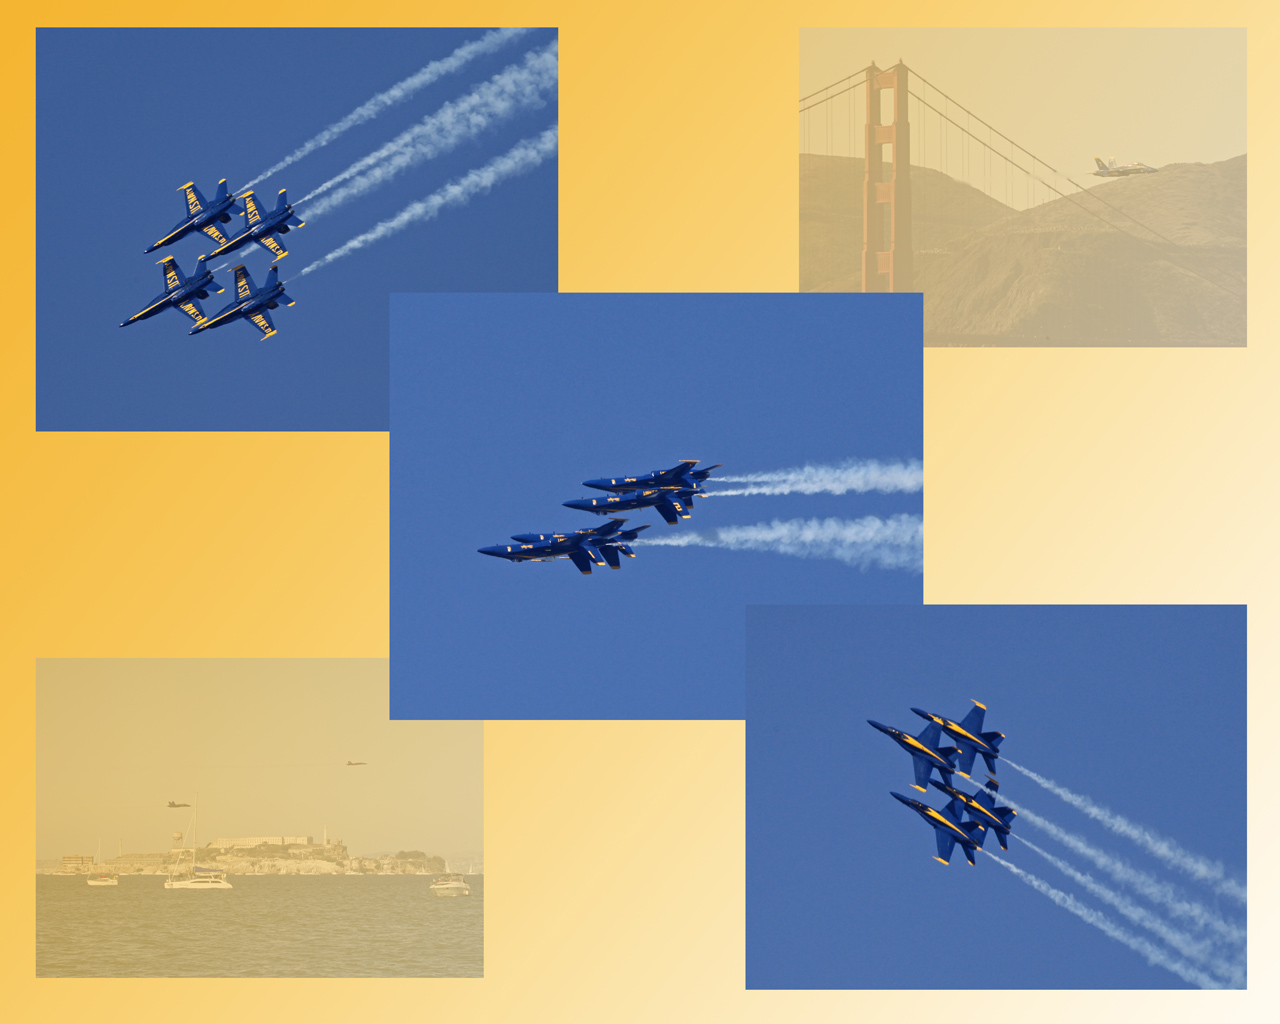 Blue Angels Do Wing Over in Tight Diamond Formation, SF